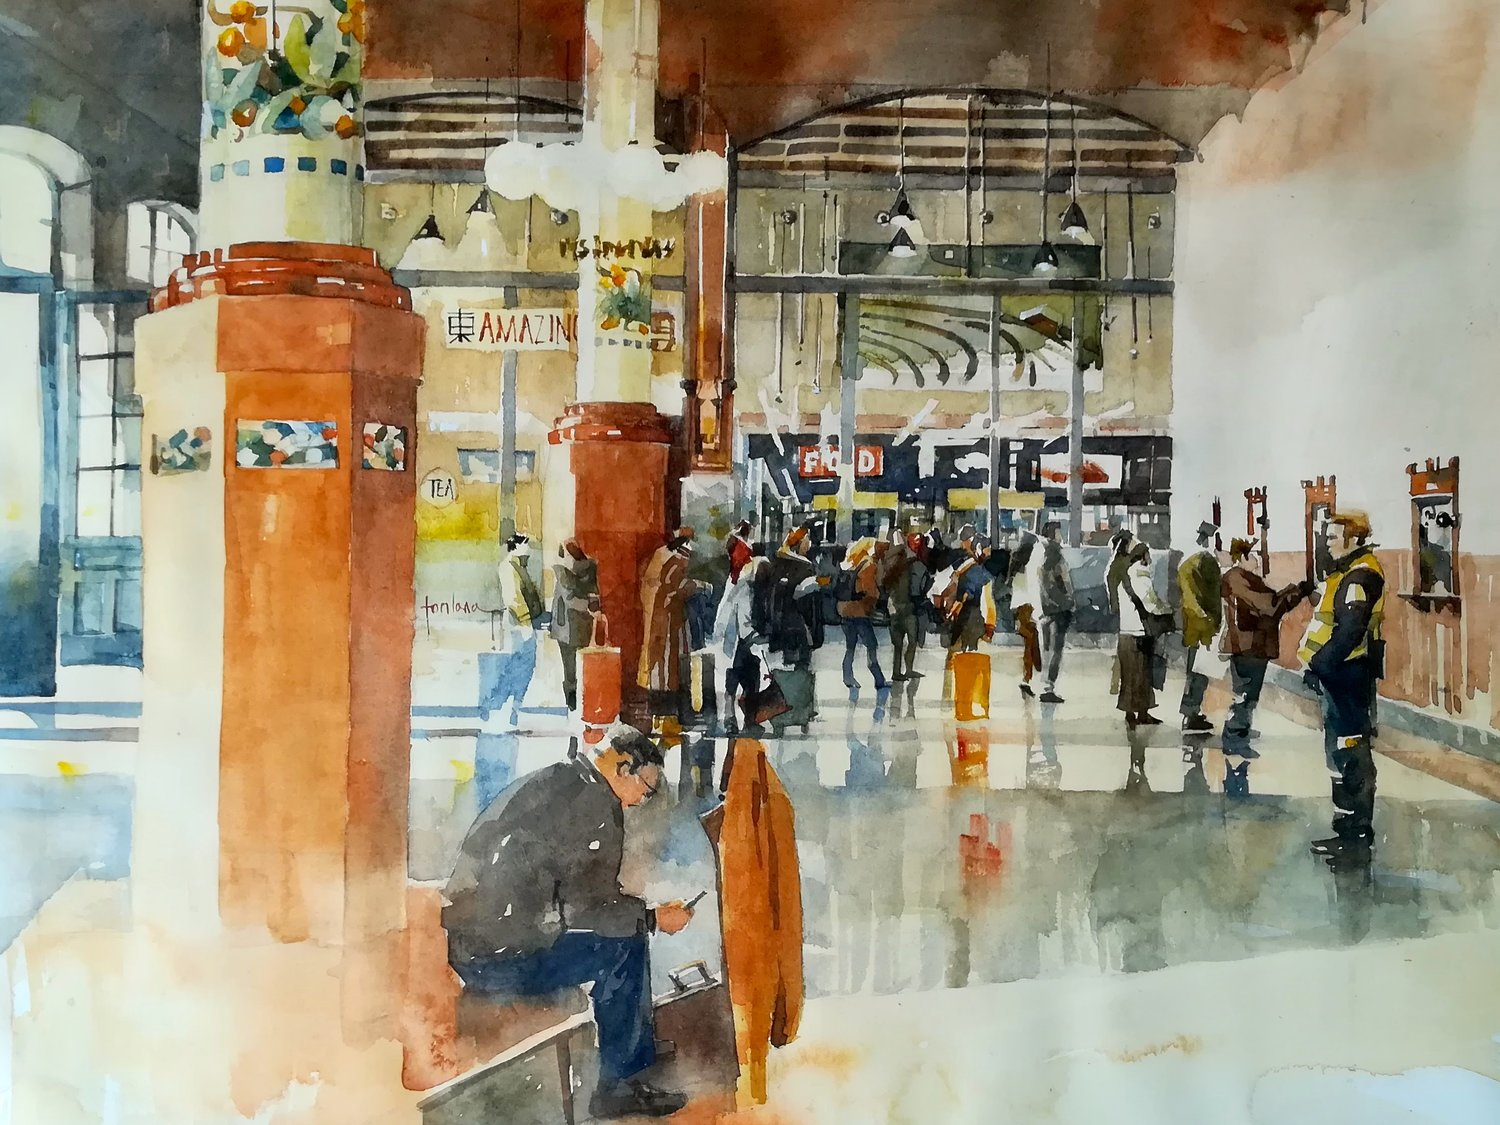 'Leaving Valencia', Francesco Fontana, Watercolor, 36 x 46 cm